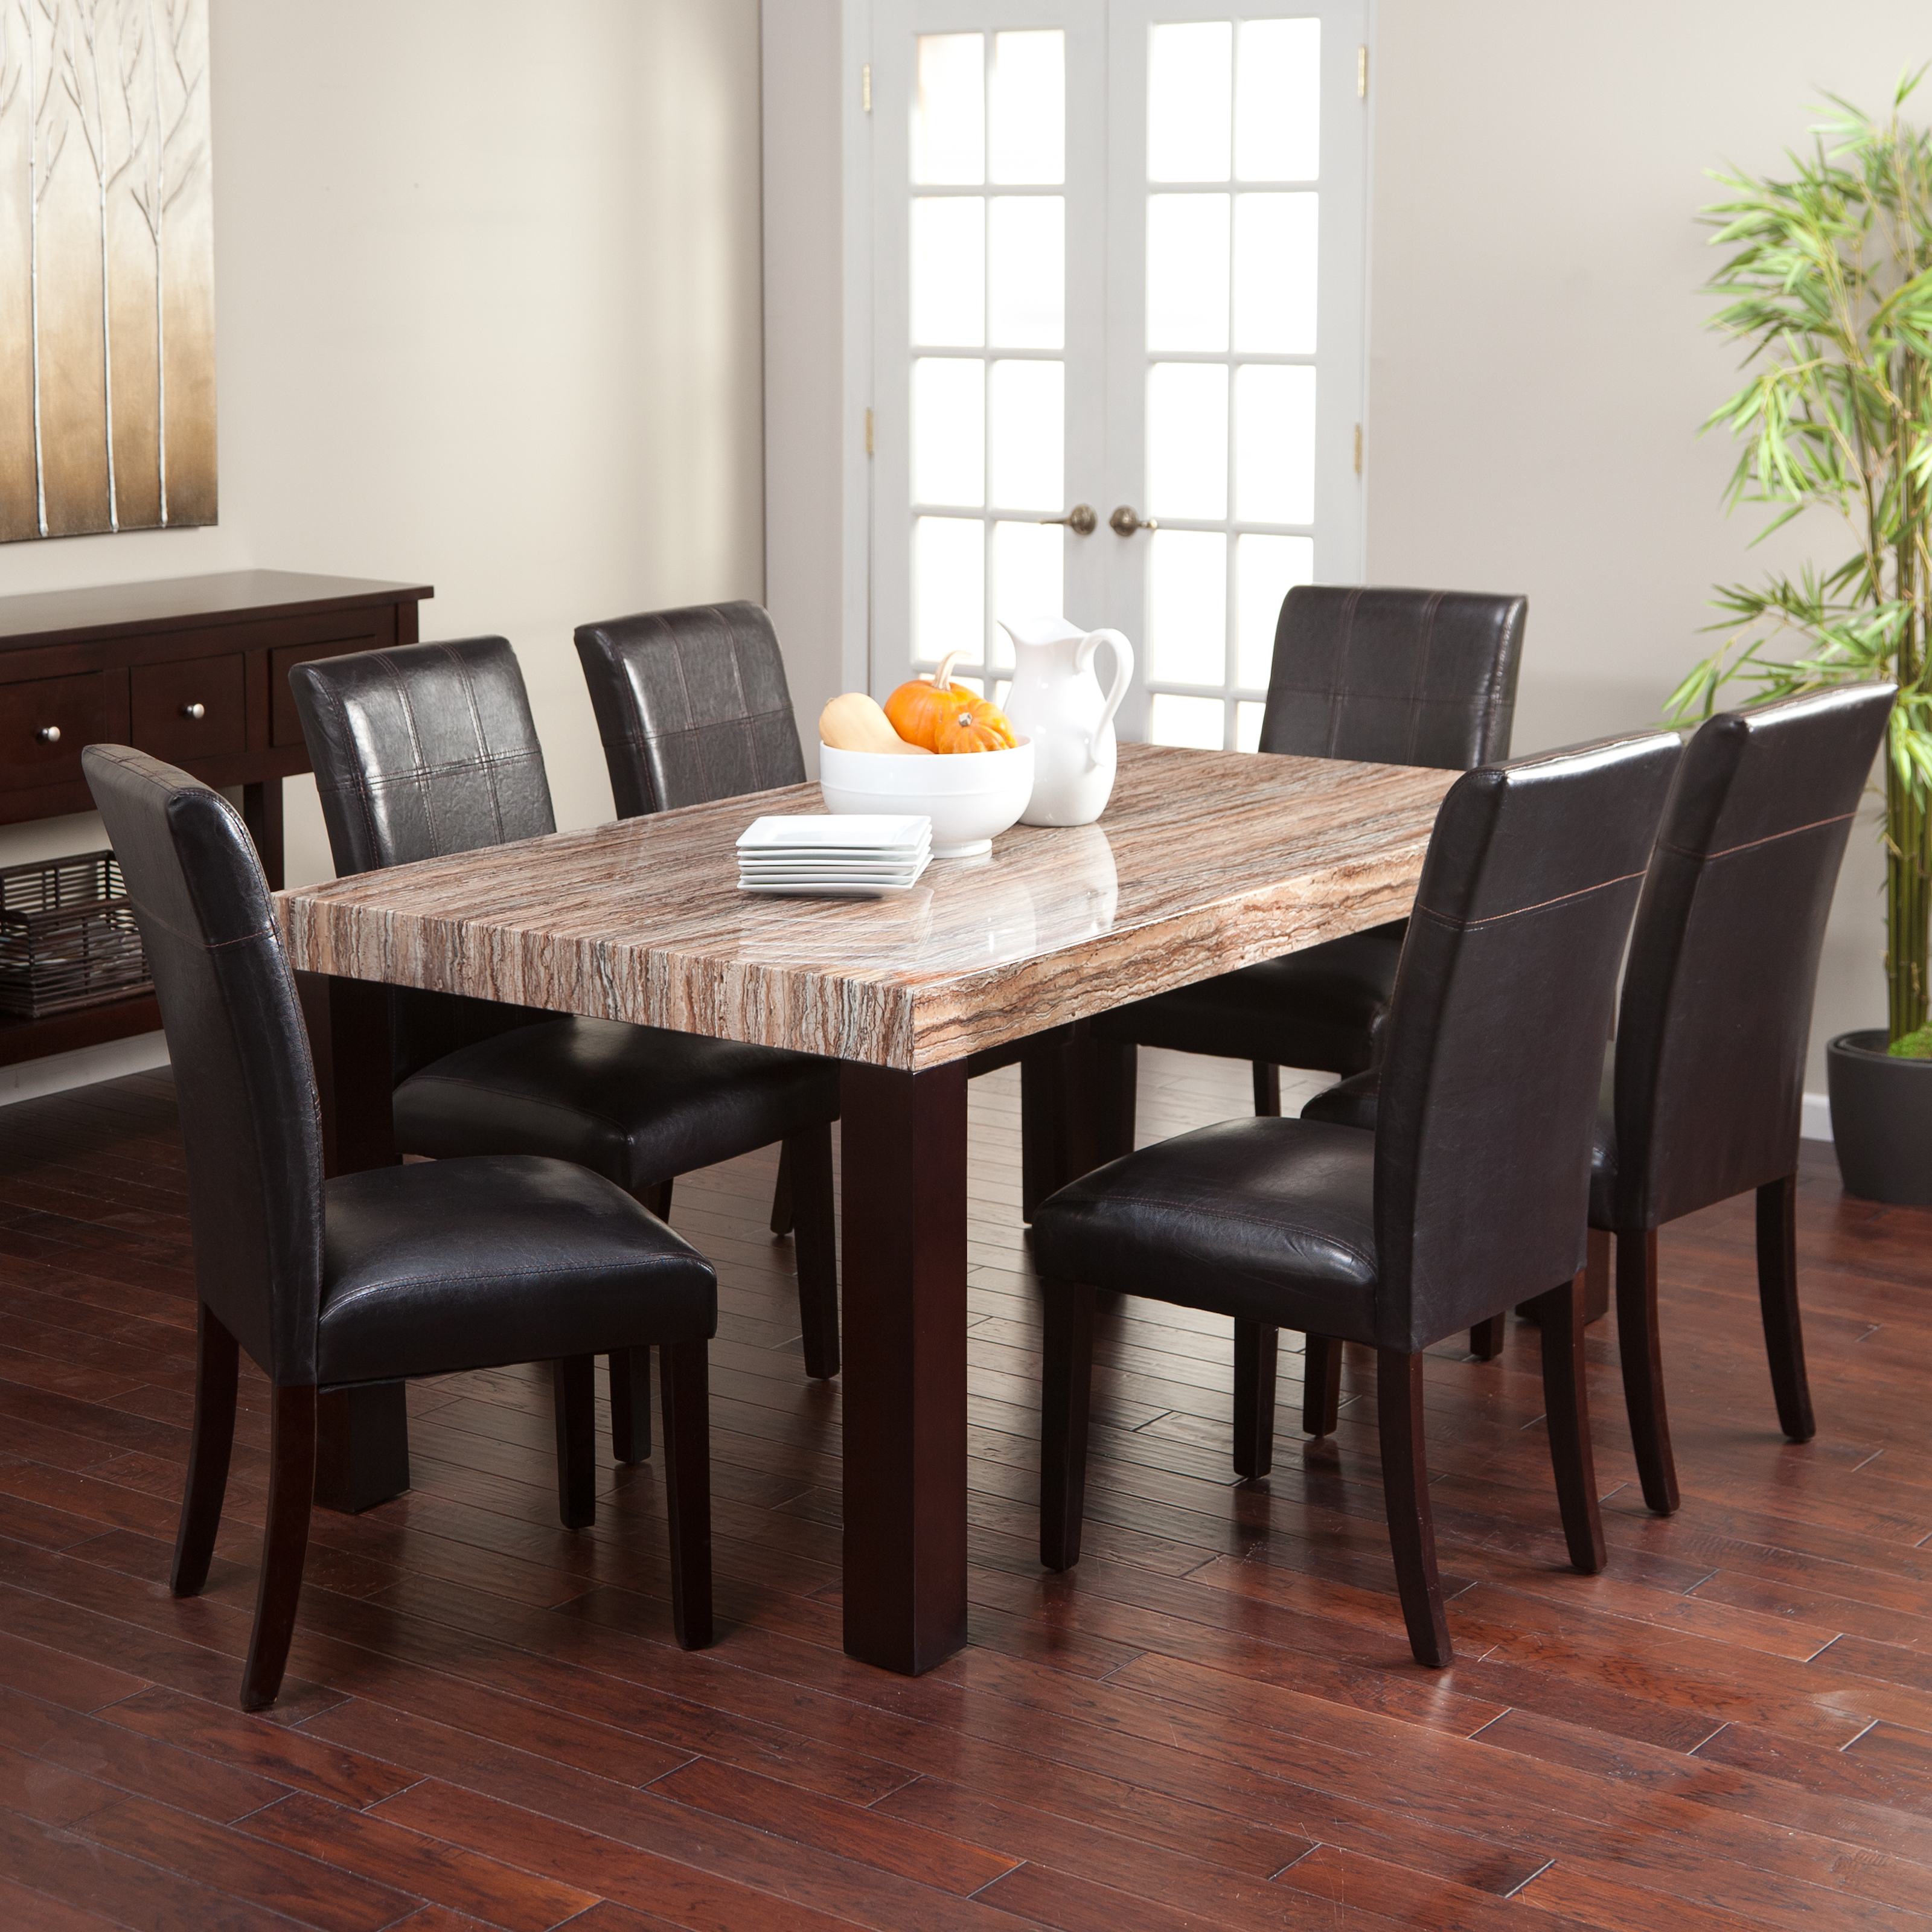 Finley Home Palazzo 6 Piece Dining Set with Bench | Hayneedle